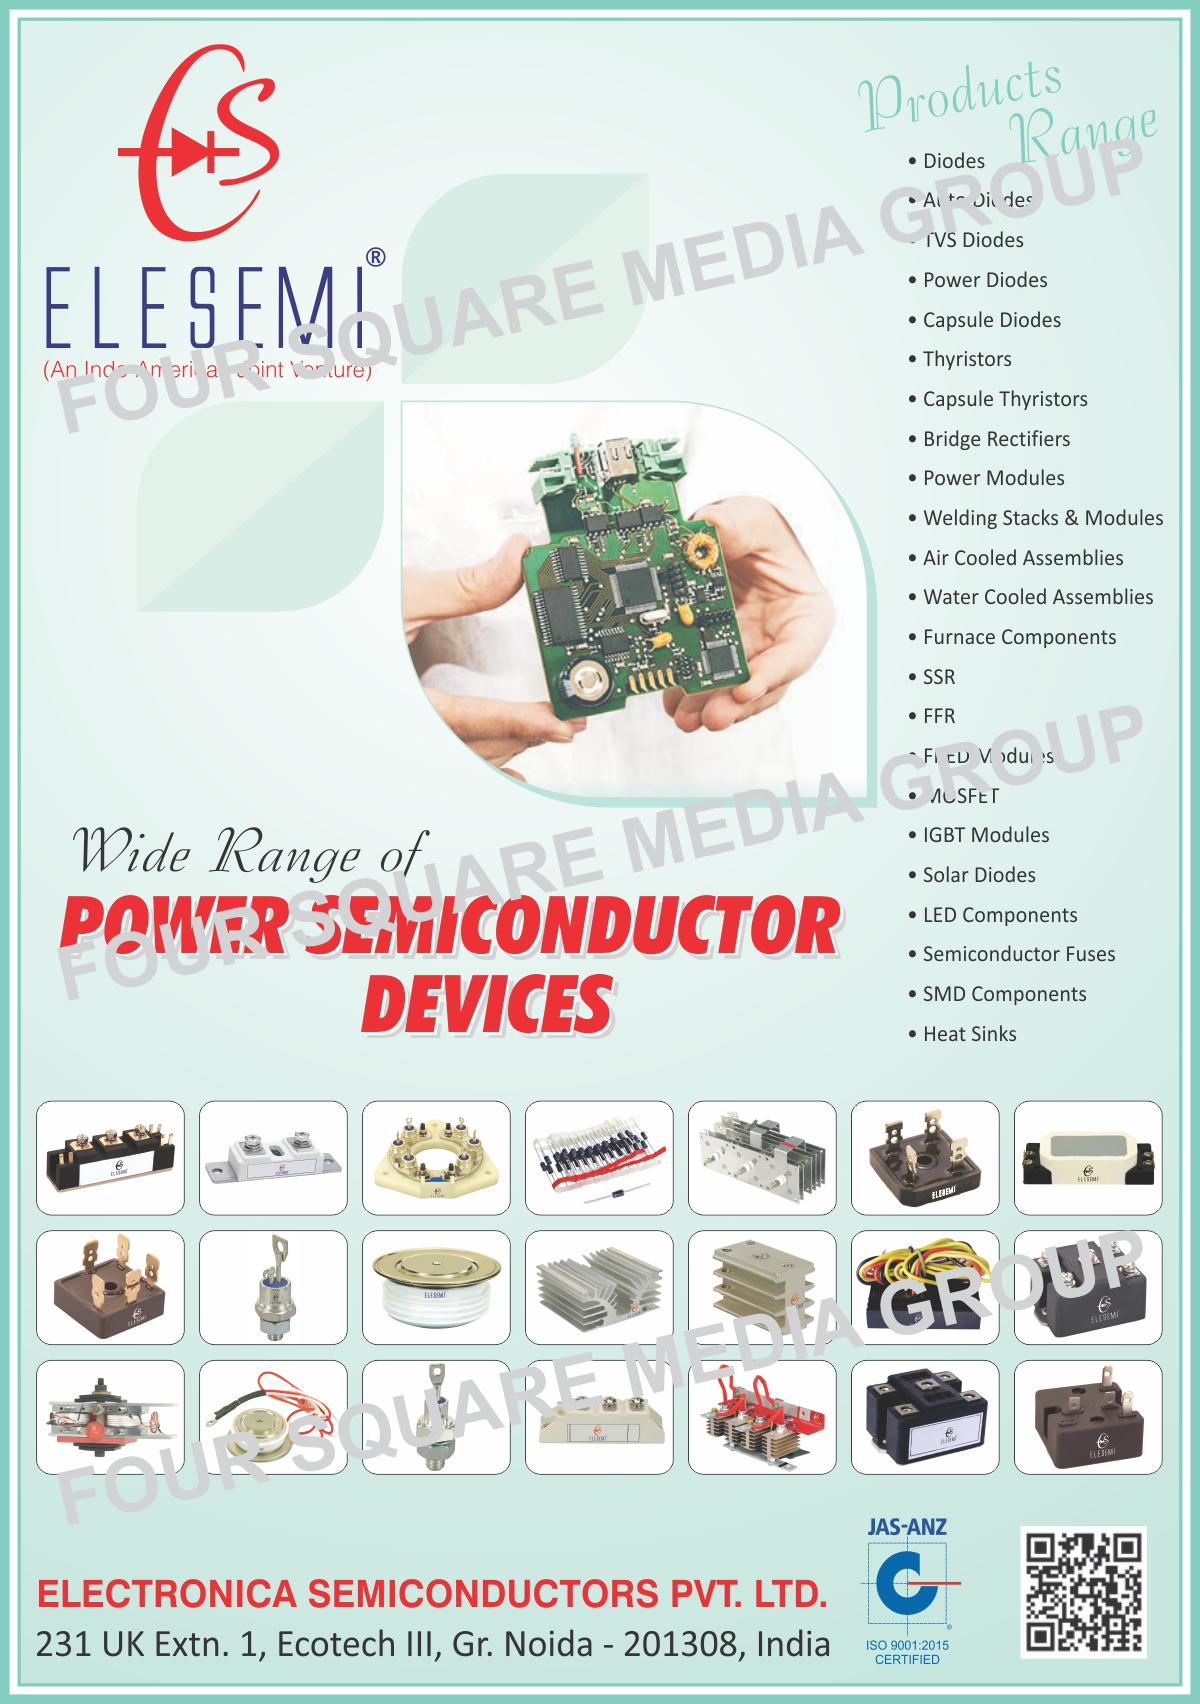 Power Semiconductor Devices | Diodes | Auto Diodes | TVS Diodes